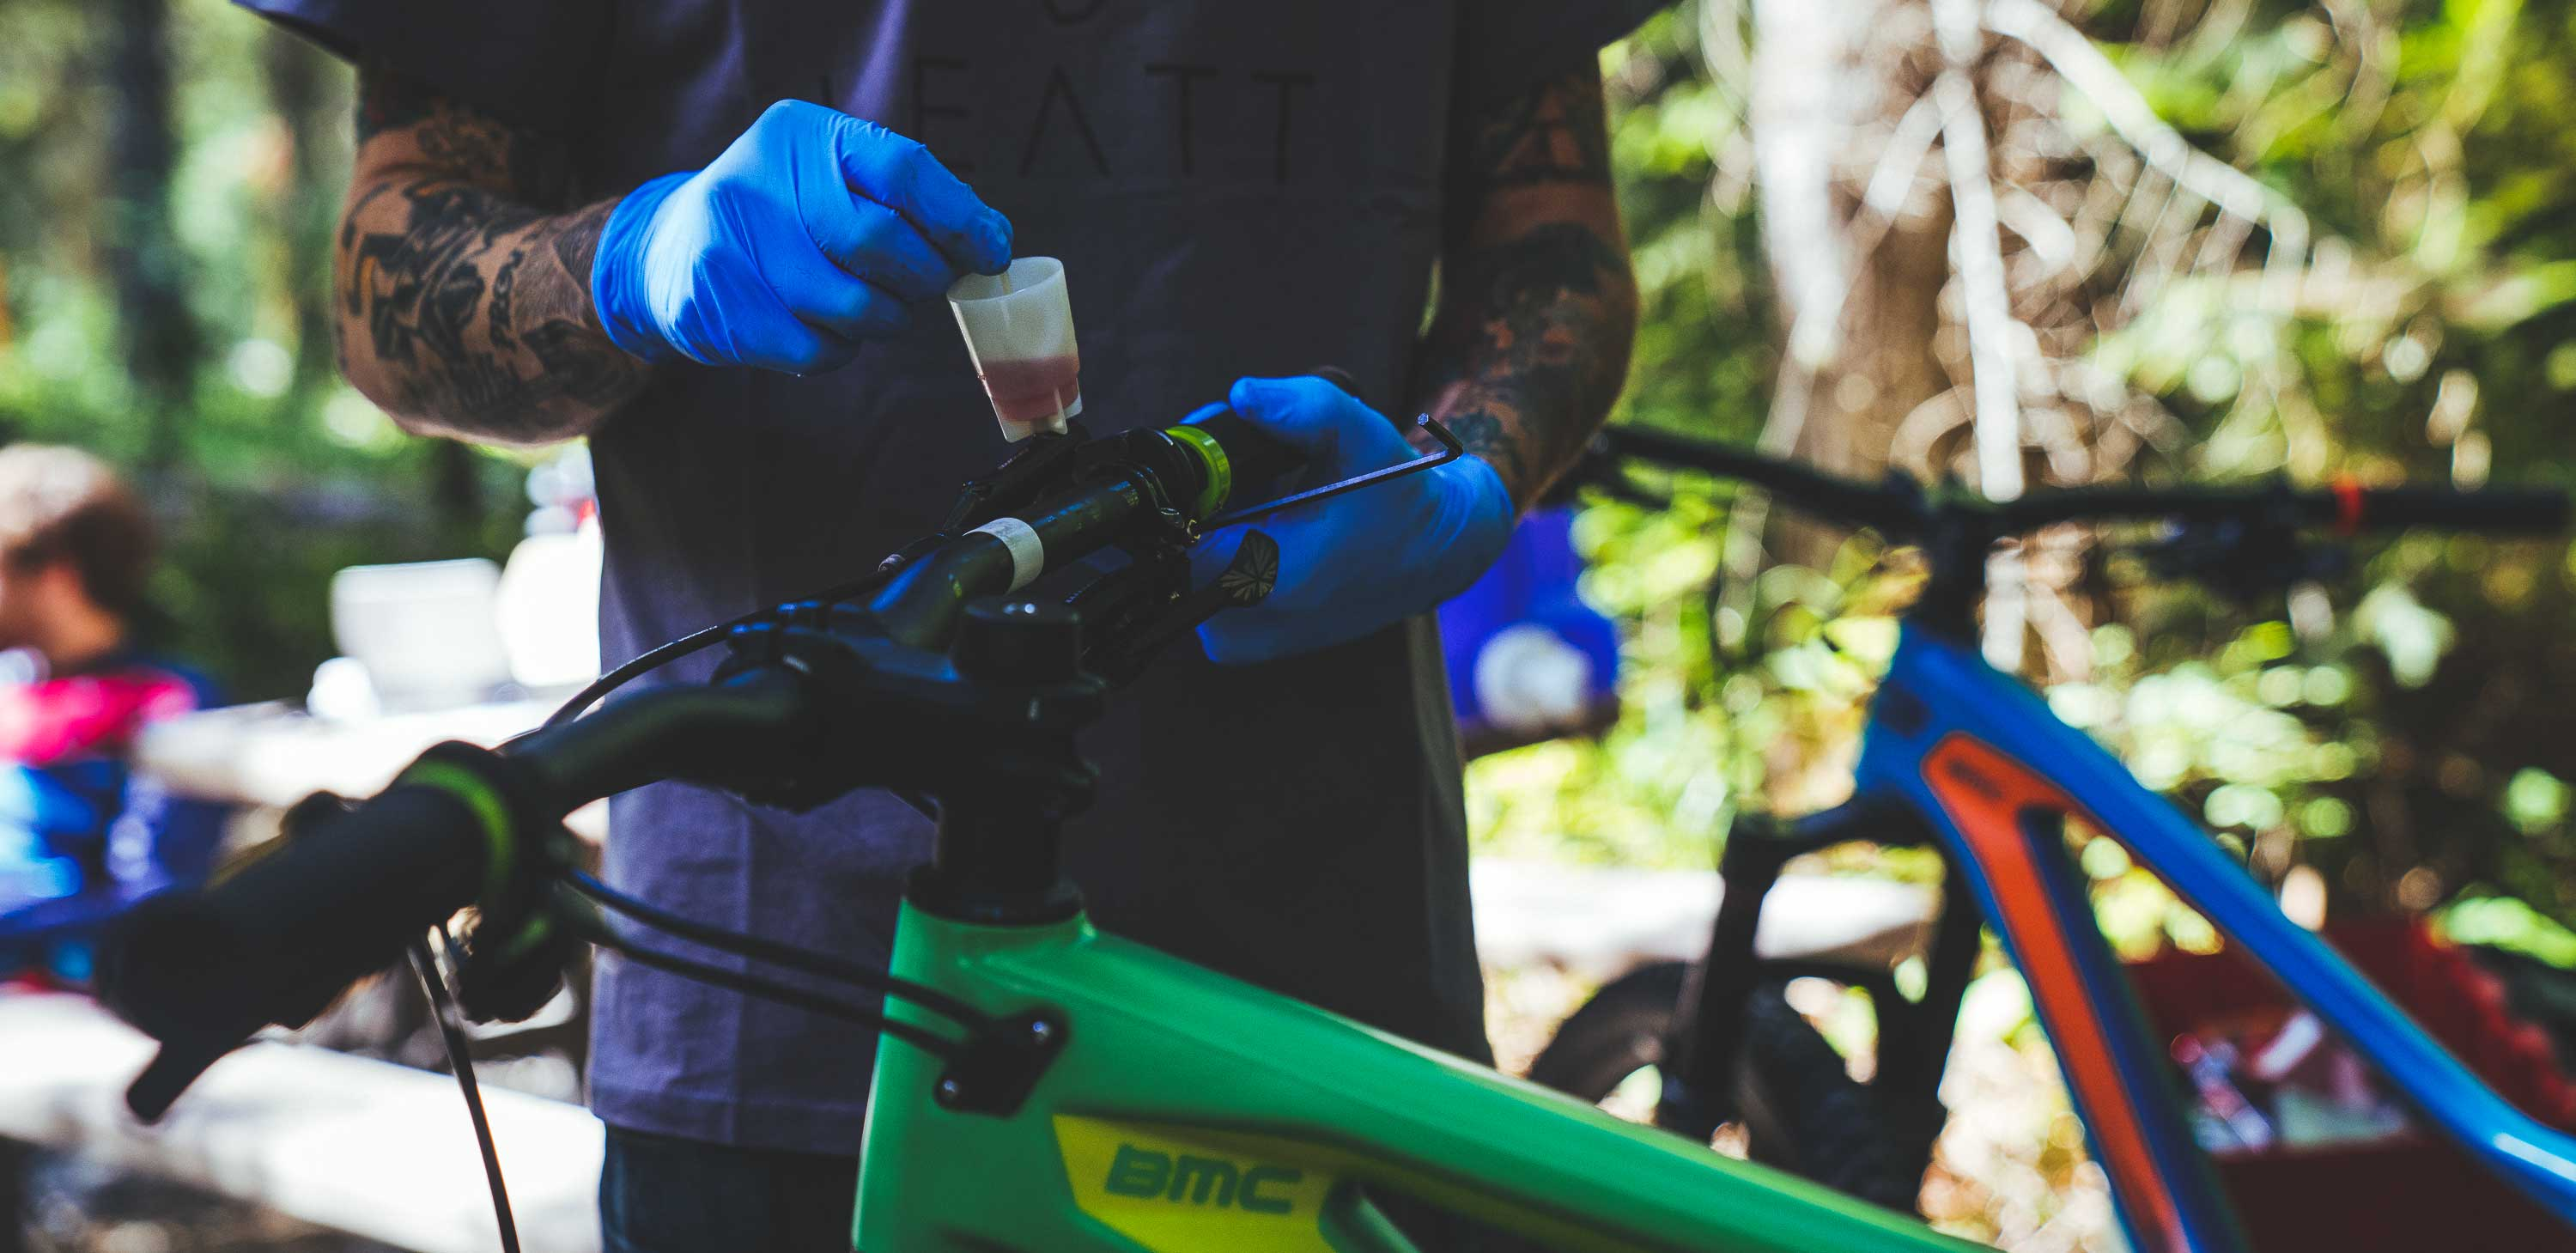 Pedals & Petrol: Prospectors of Adventure